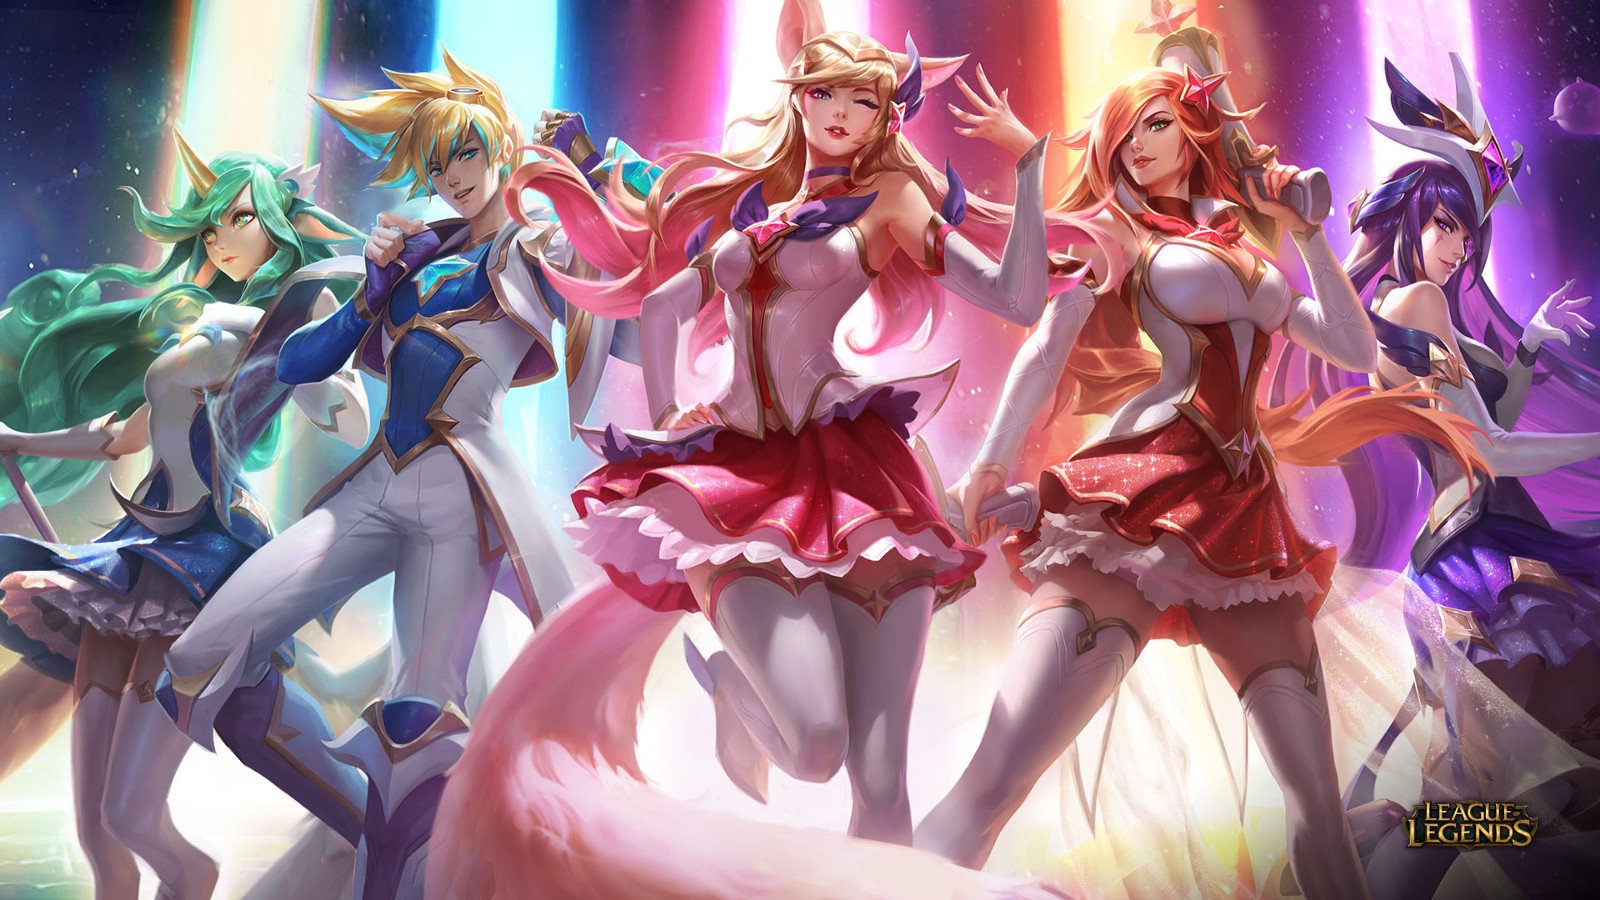 Le Club Esports Gameward: League Of Legends: Star Guardian Skins Now Available